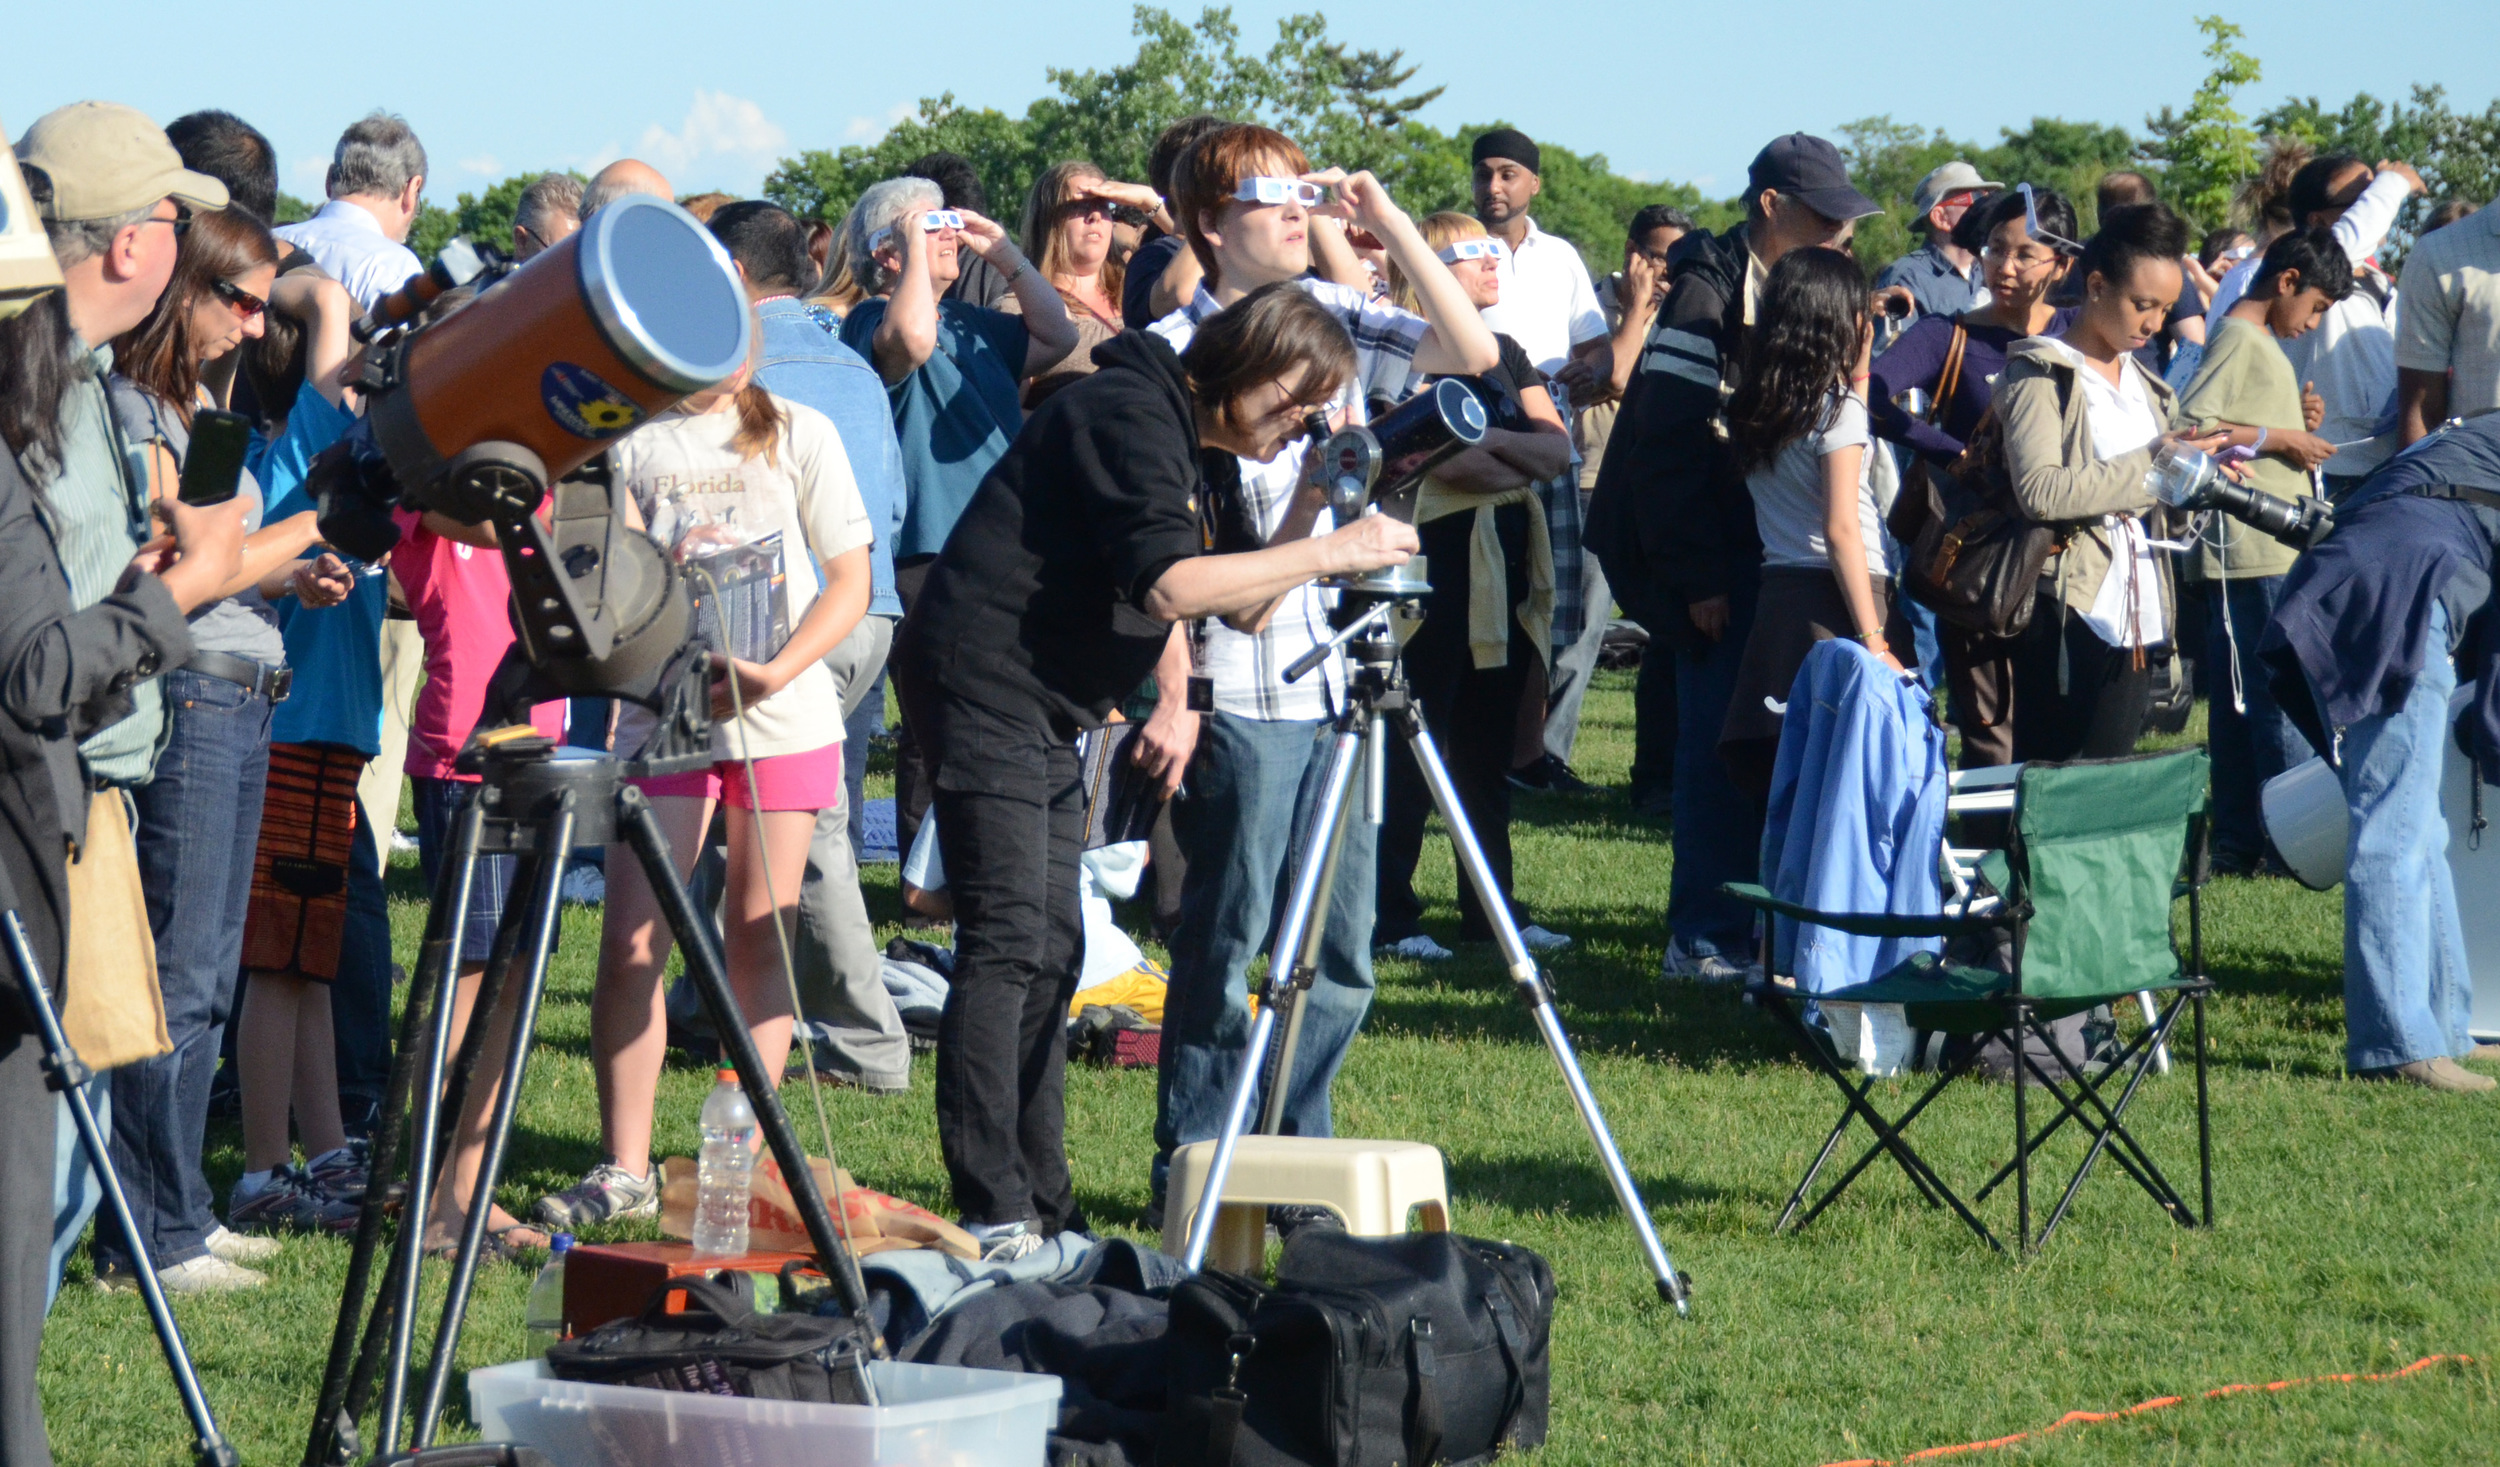 Amateur astronomers observing the transit of Venus in 2012.